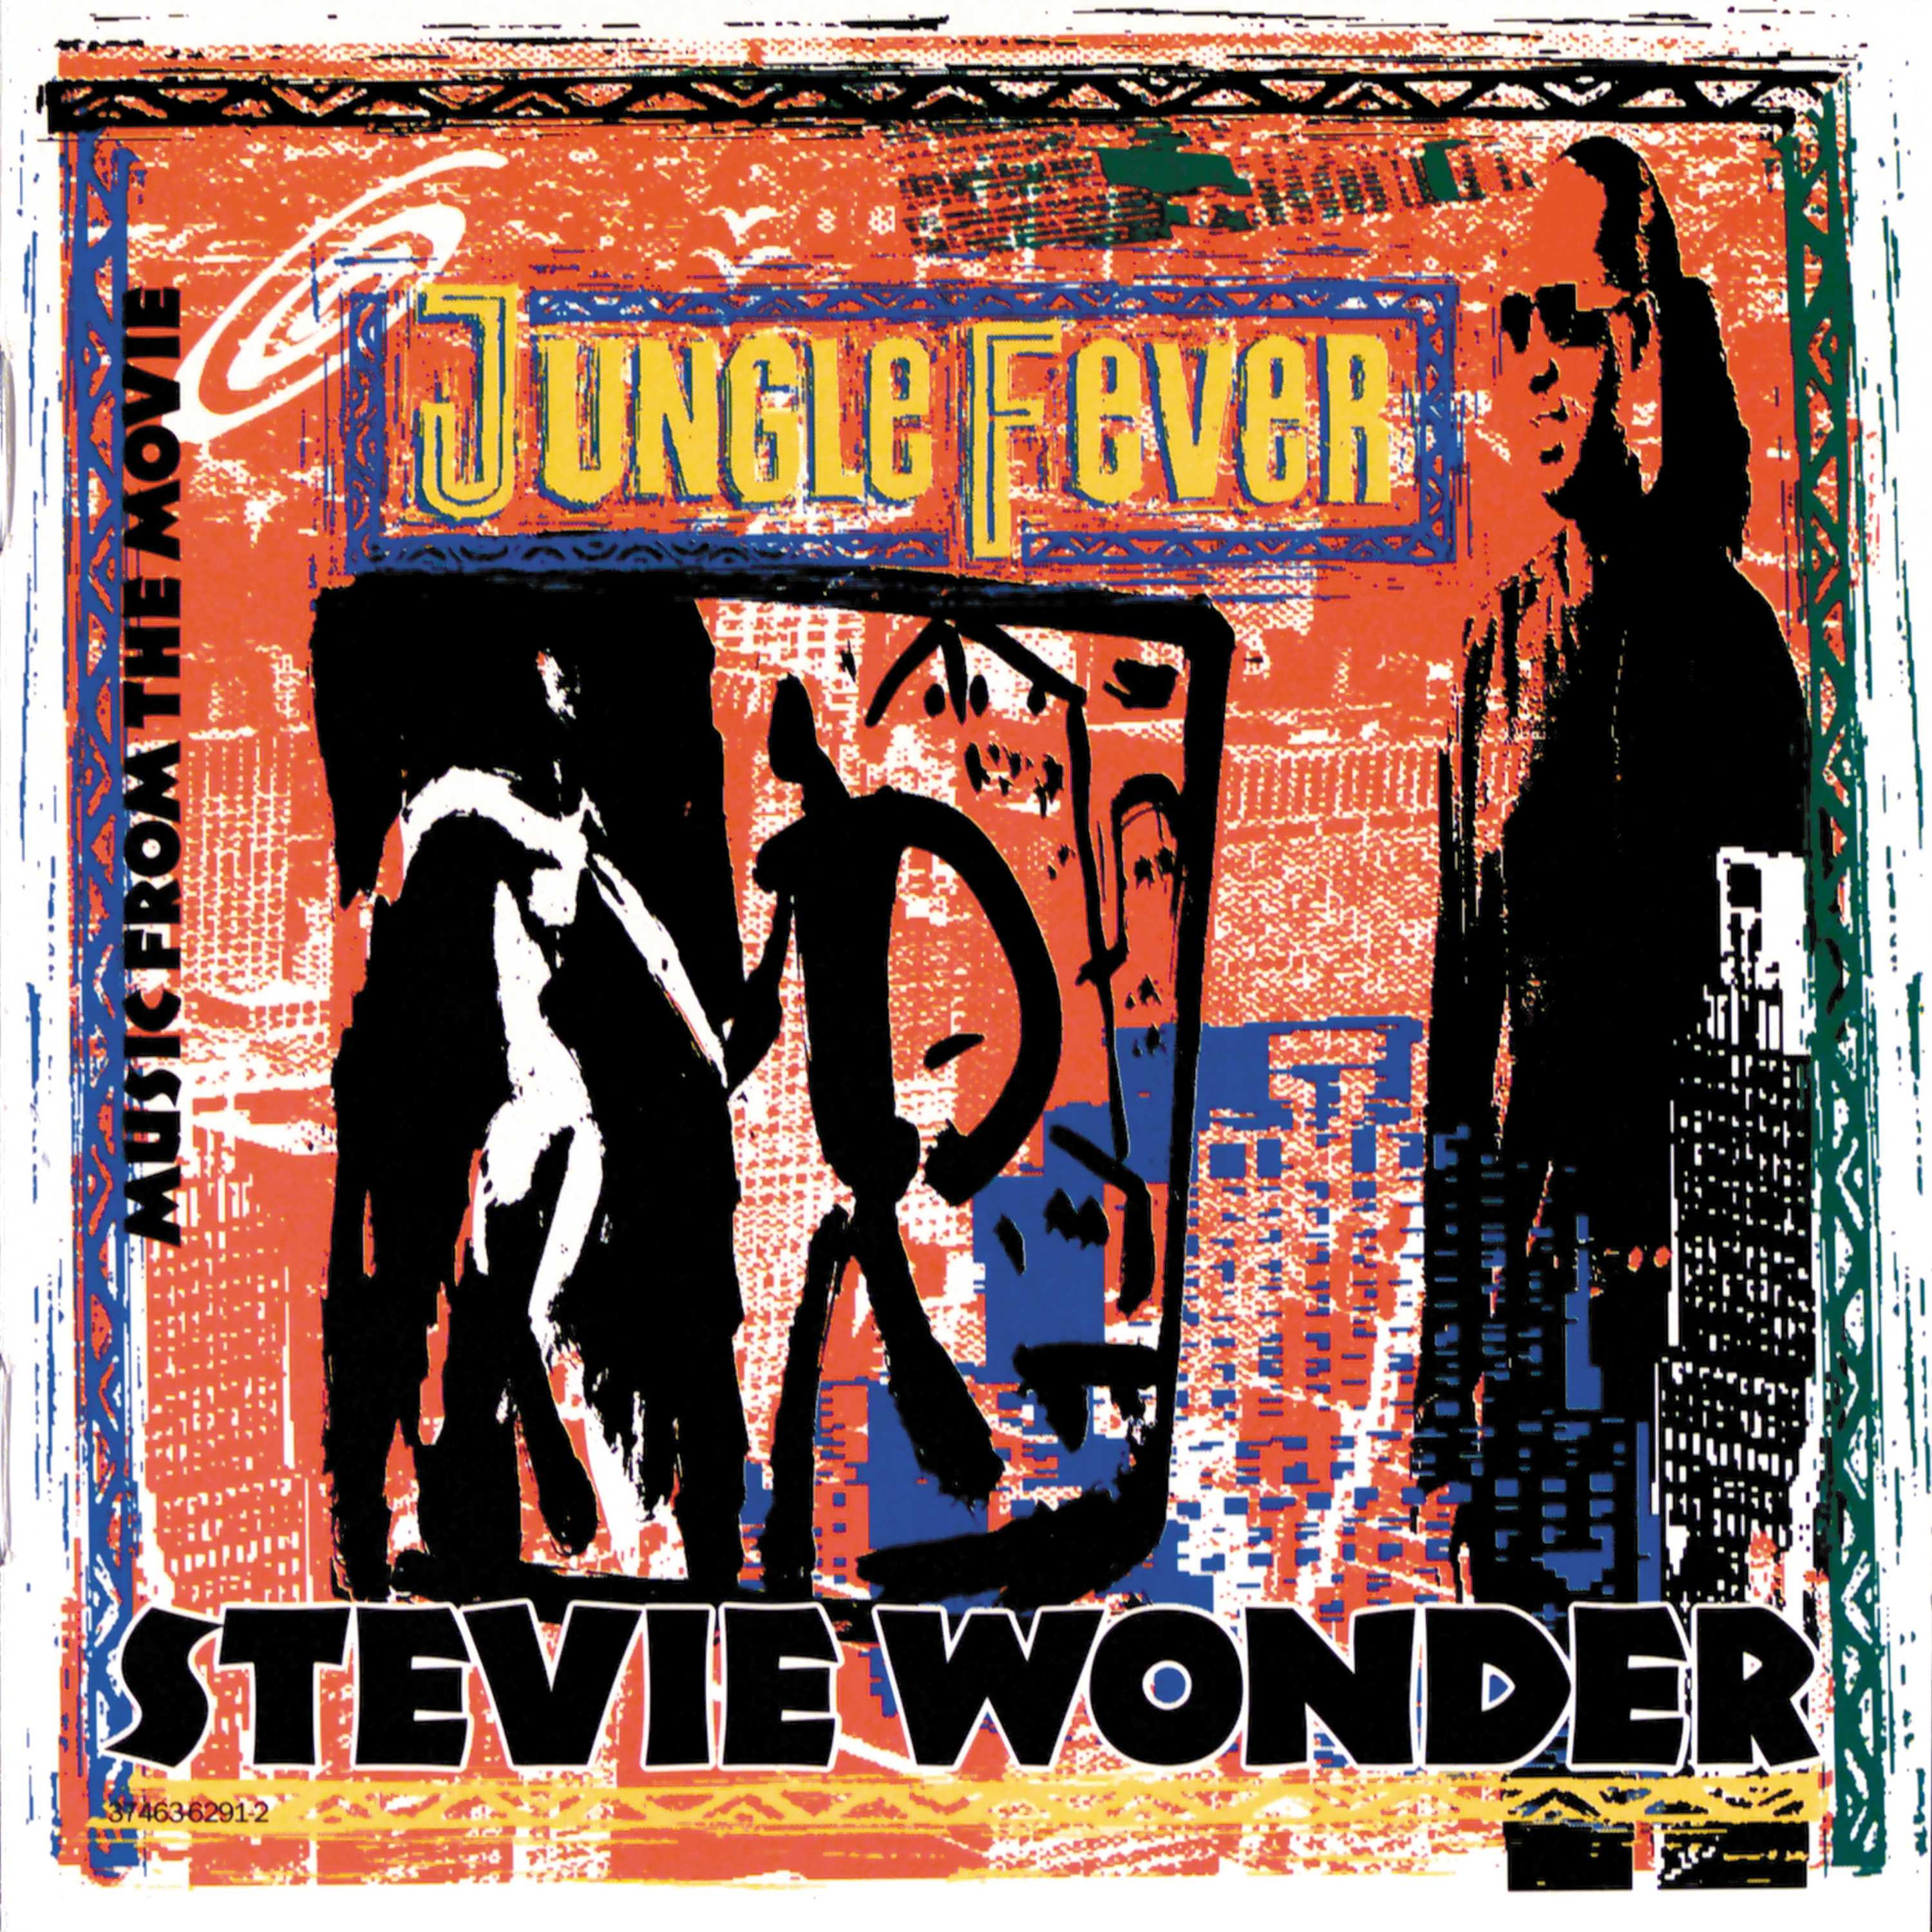 24 Stevie Wonder Album Covers That Will Always Be Remembered